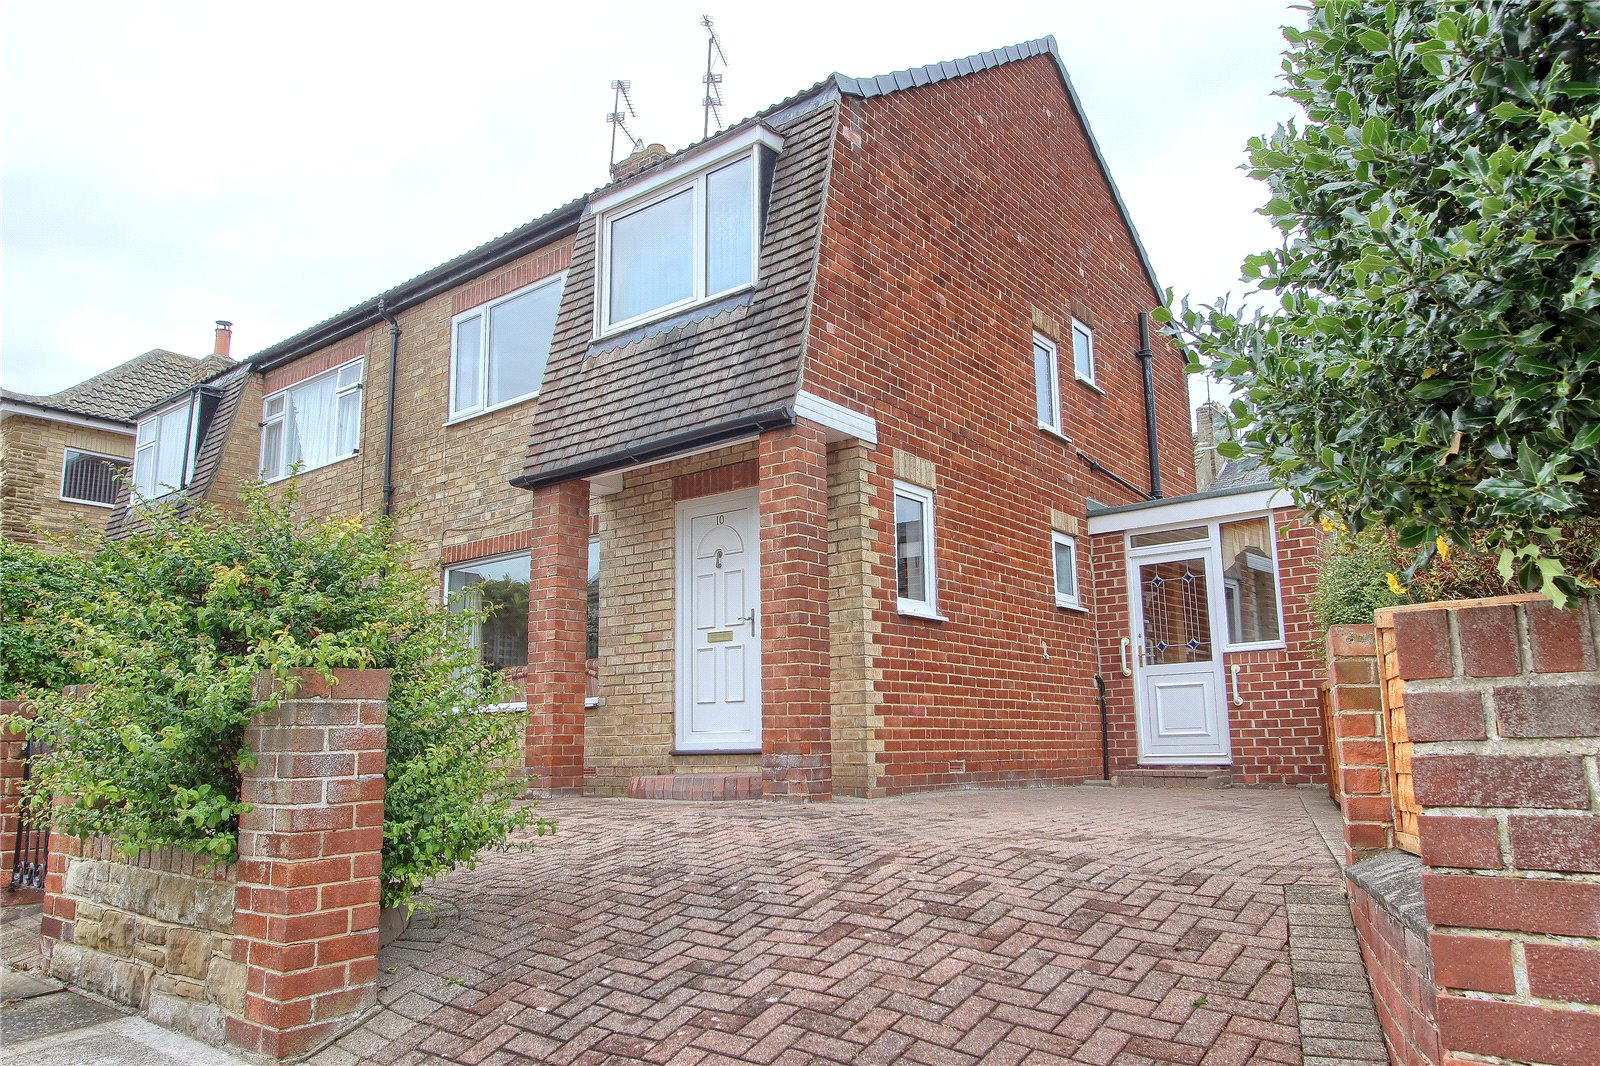 4 bed house for sale in Avon Close, Saltburn-by-the-Sea 1